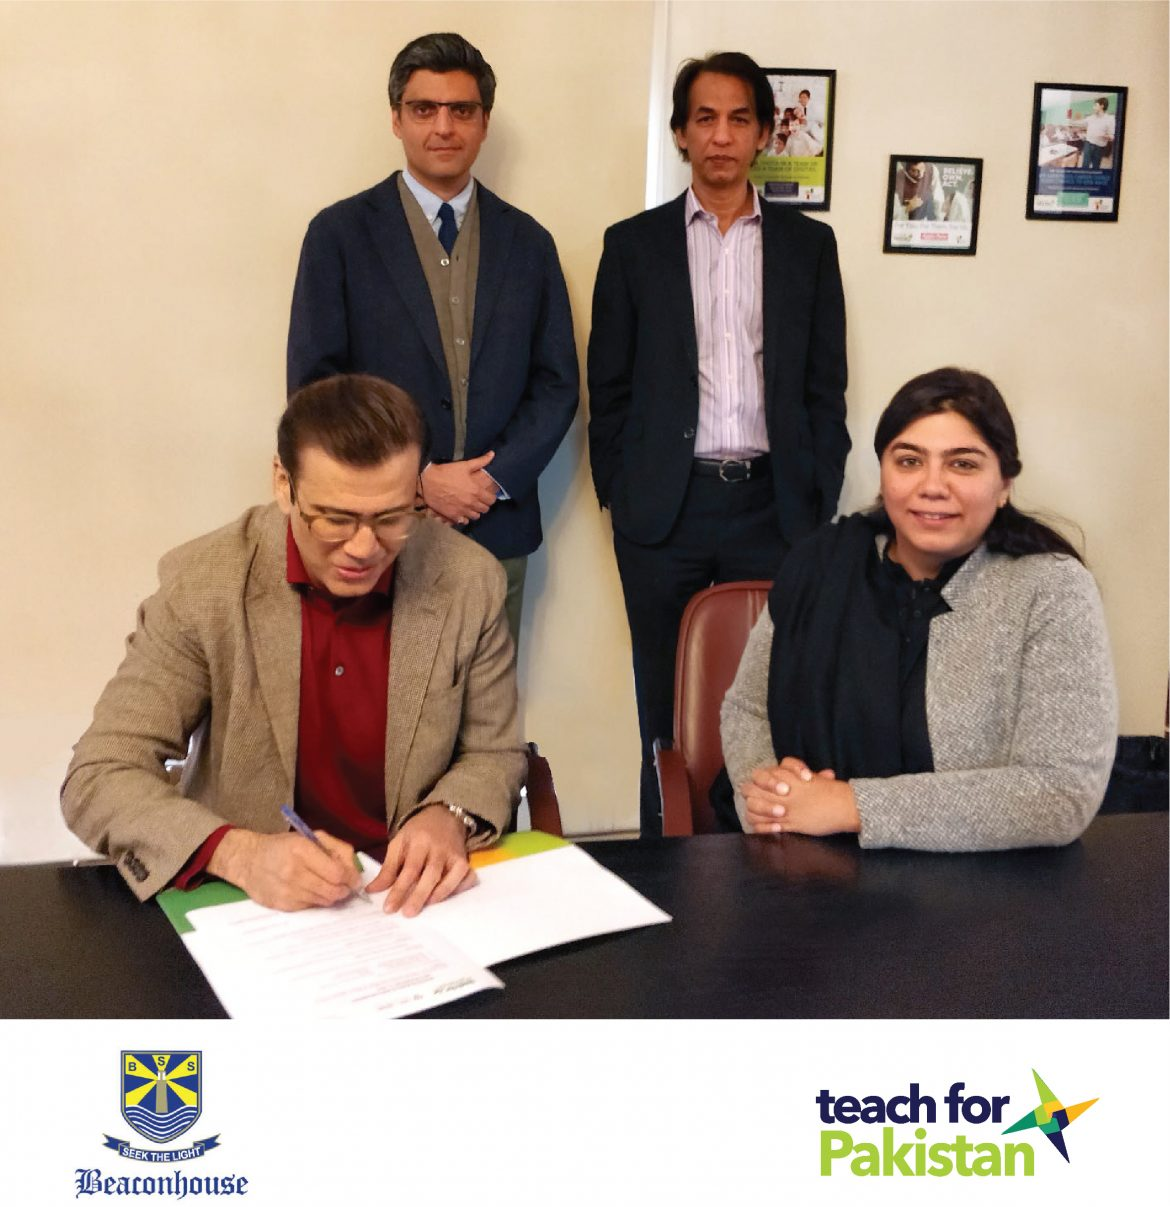 The Beaconhouse Group partners with Teach For Pakistan to strengthen the movement to end educational inequity.